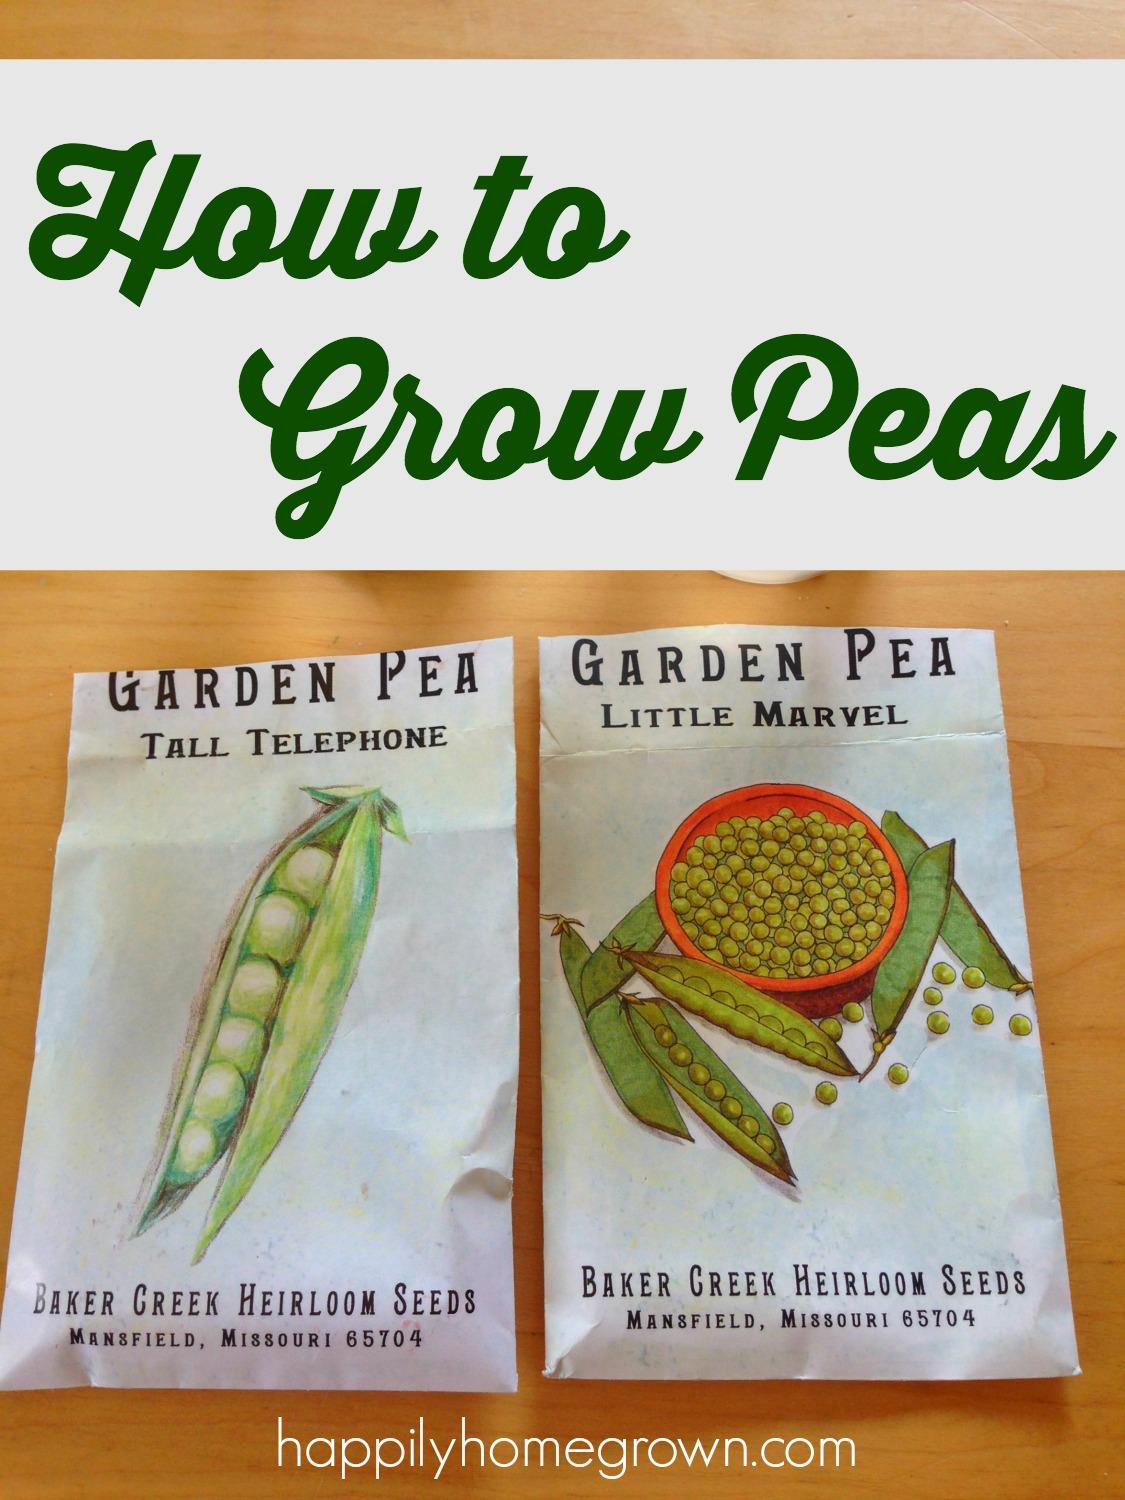 Peas are one of the earliest spring vegetables. They are easy to grow, and now is the perfect time to get them in the ground!